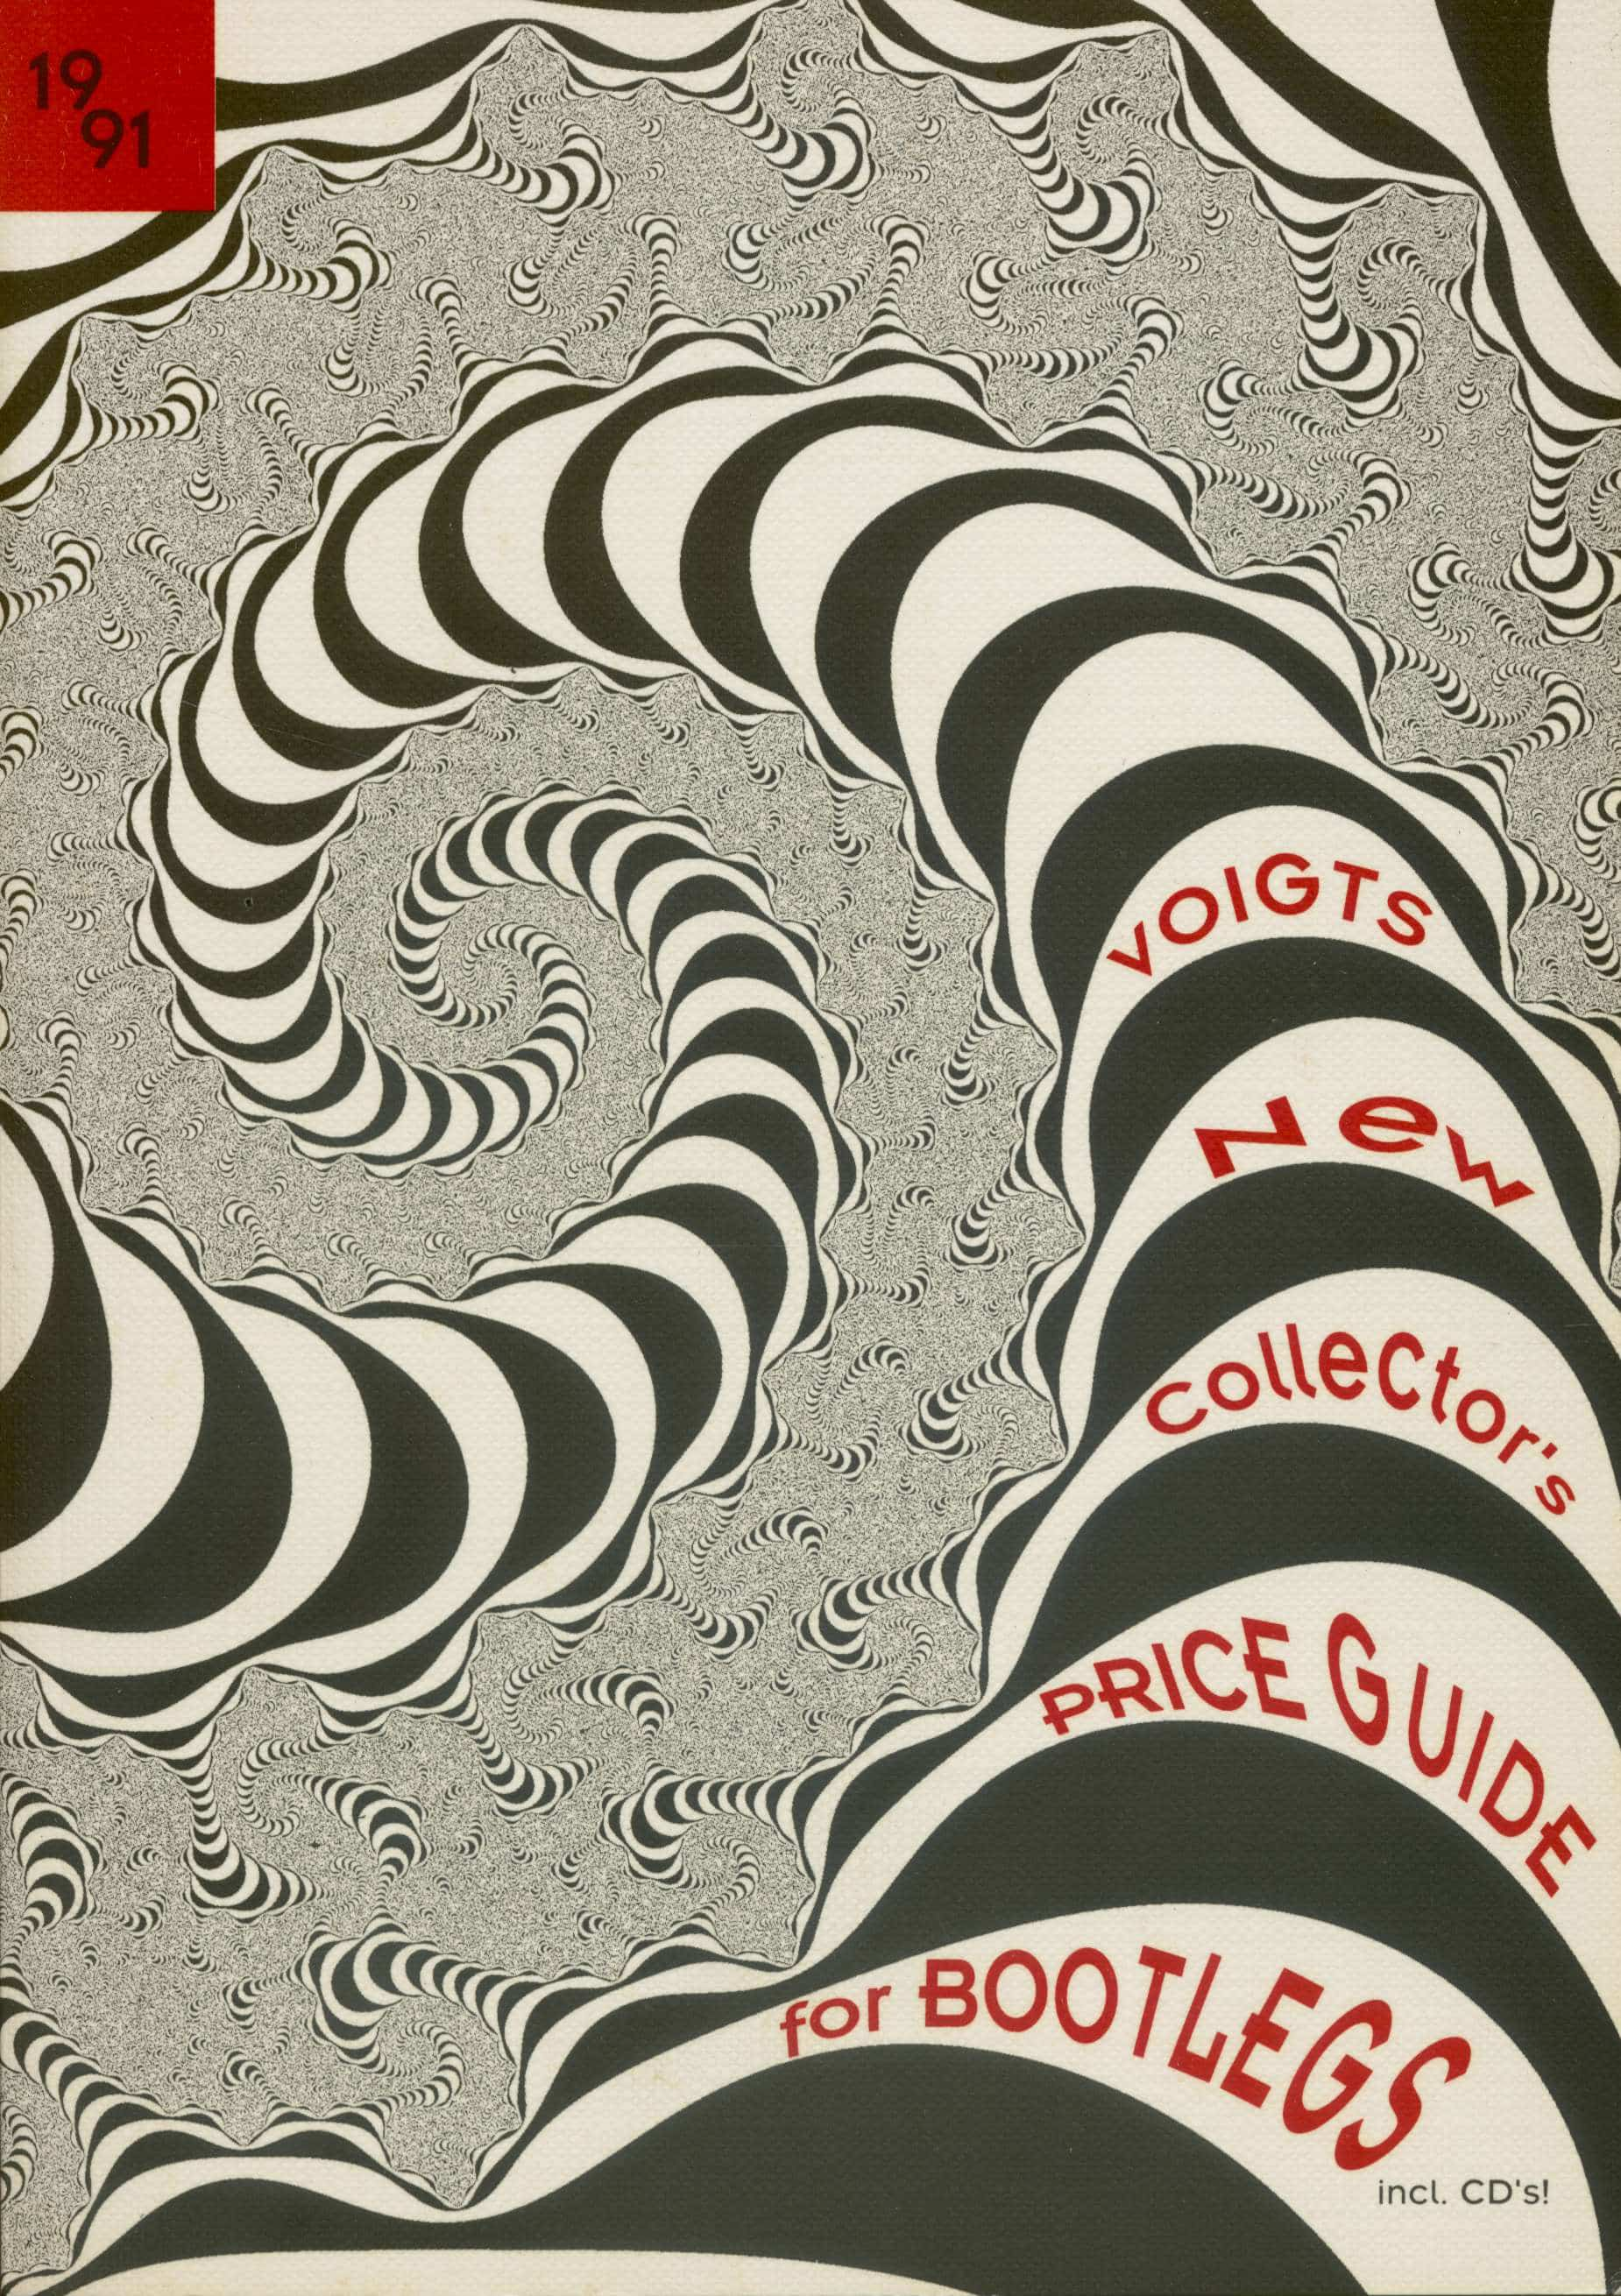 Collector's Price Guide Voigts New Collector's Price Guide for Bootlegs  incl  CD's